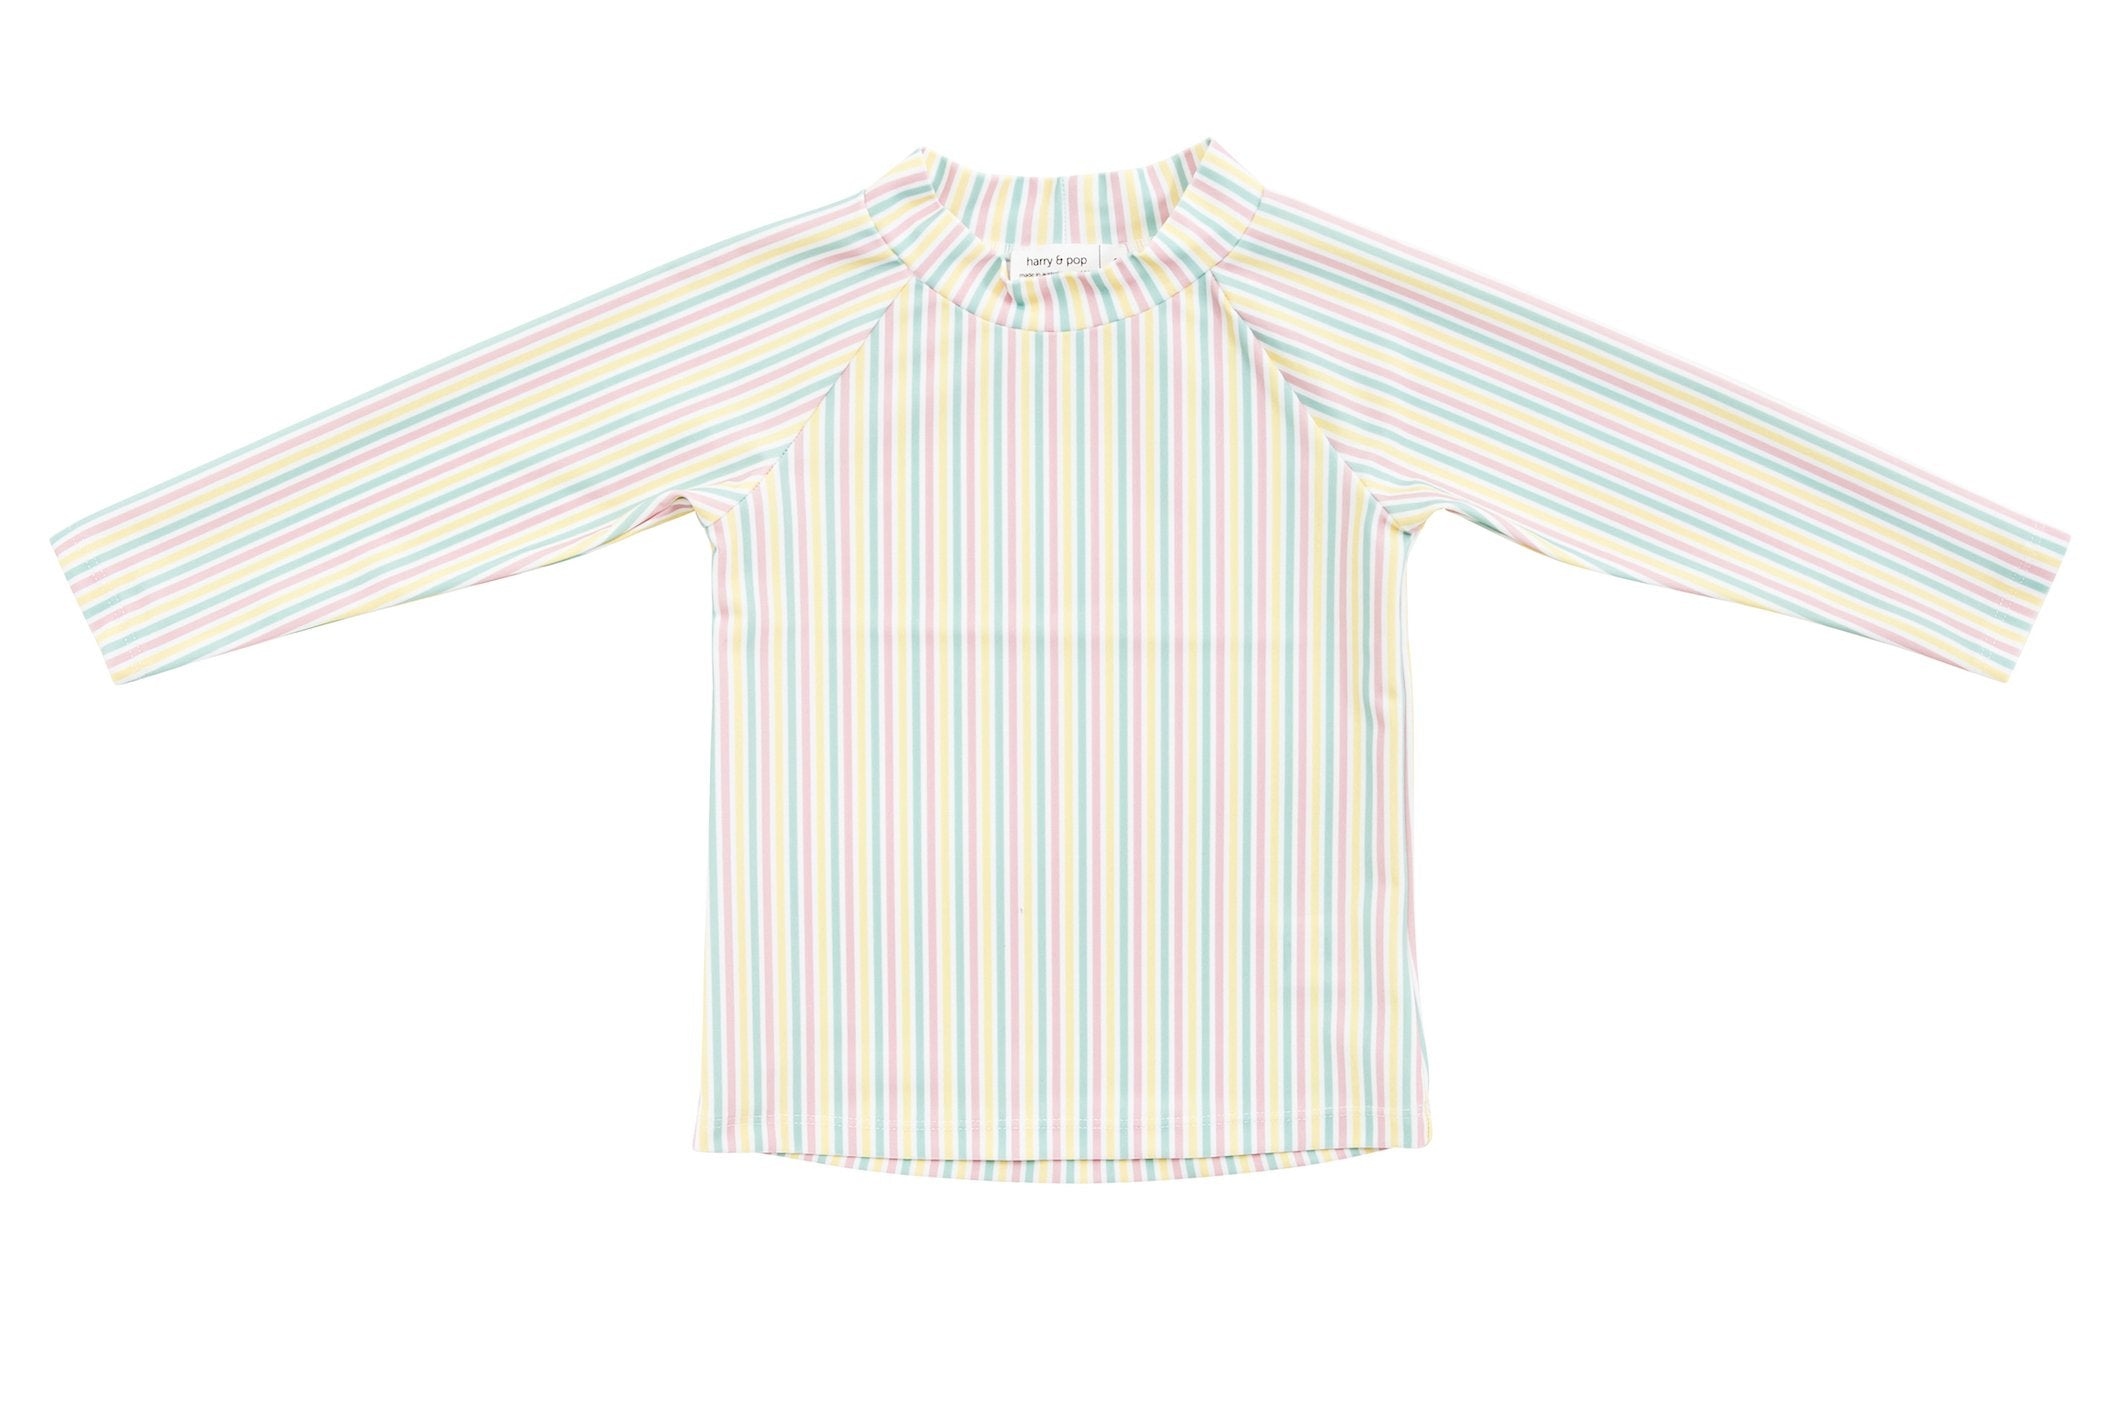 harry & pop original rashguard in portsea pink stripe | rashie | rashvest